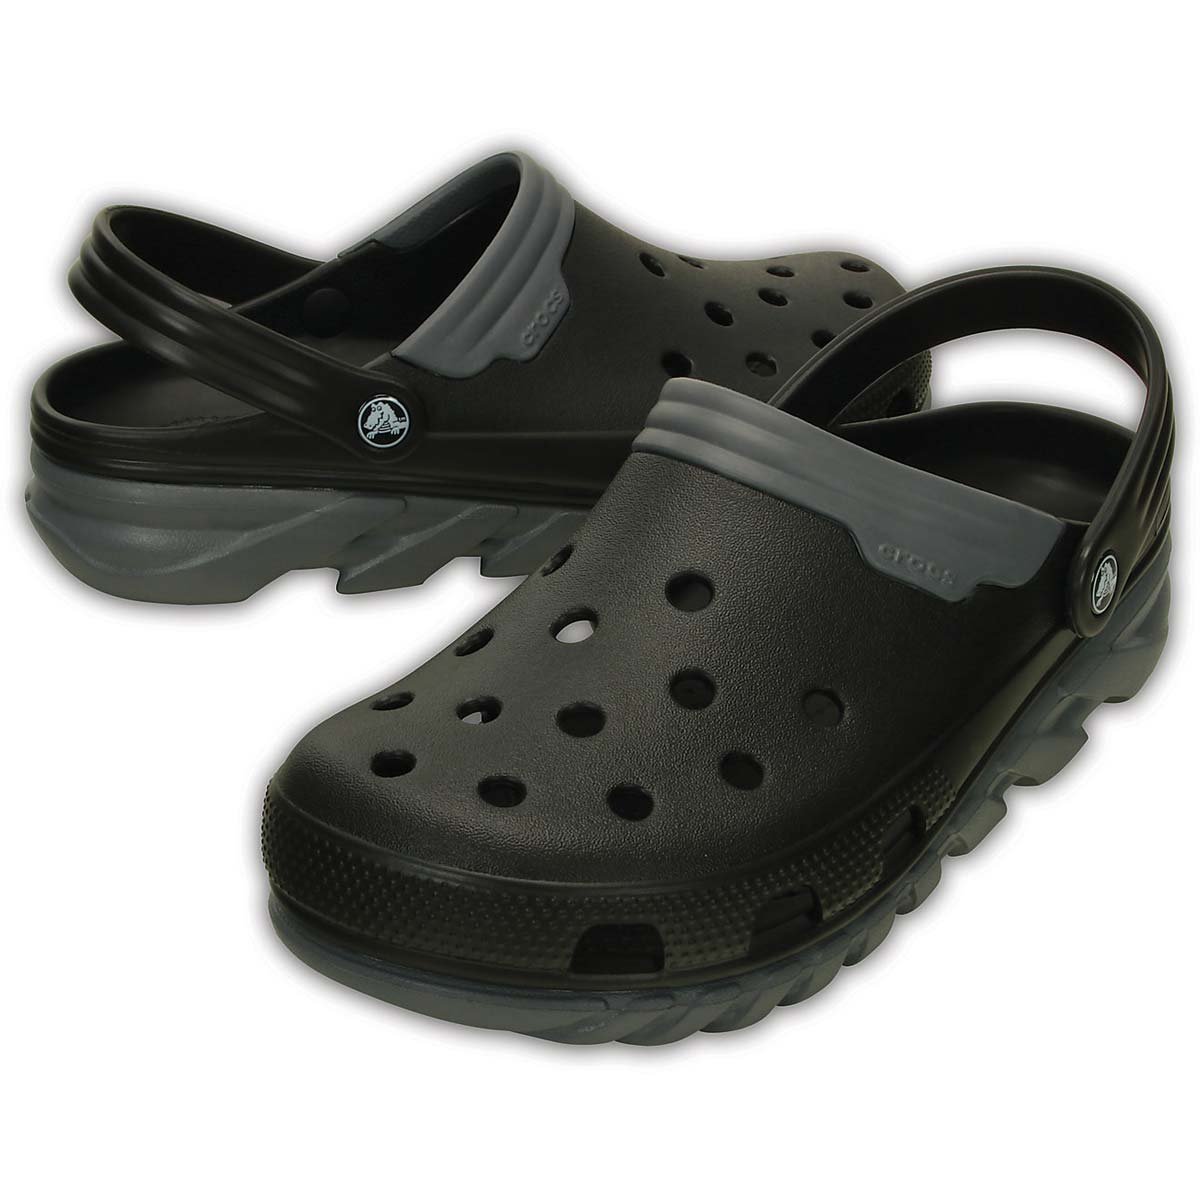 51be0e168d7ac Buy Crocs Duet Max Clog (Black Charcoal) Online at Lowest Price in India